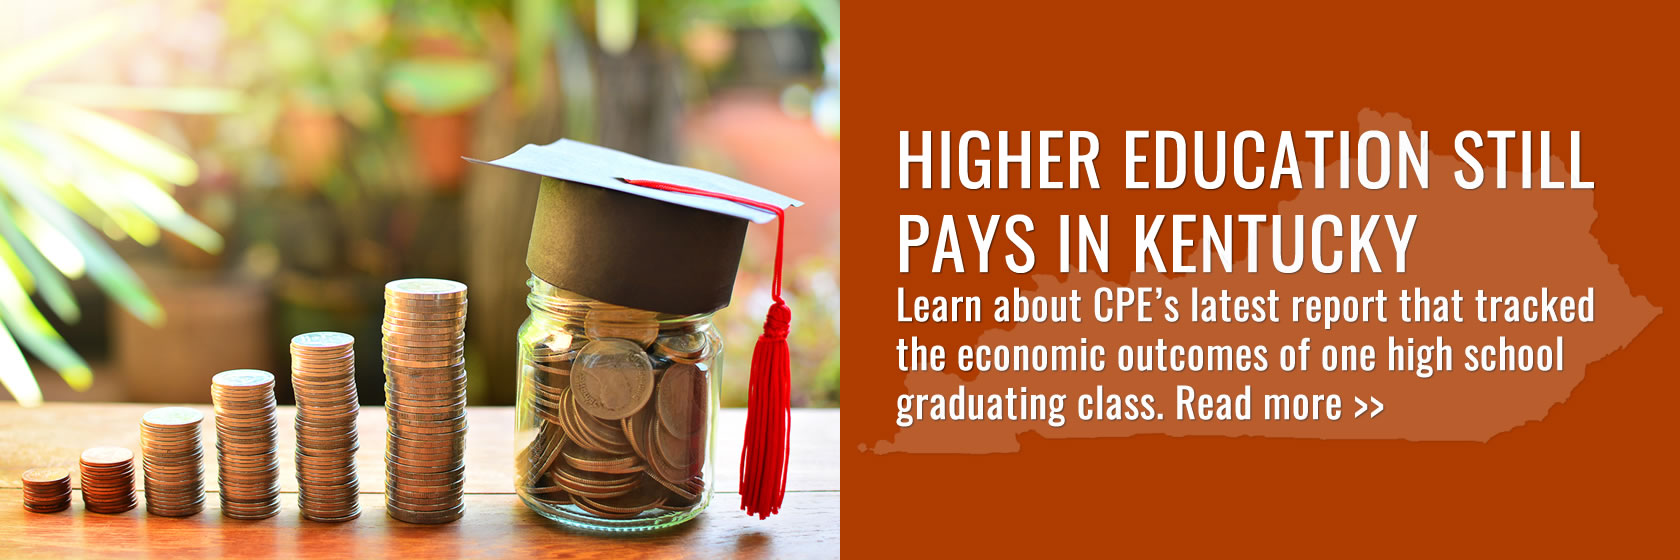 Learn about CPE's latest report that tracks the economic outcomes of a graduating high school class.